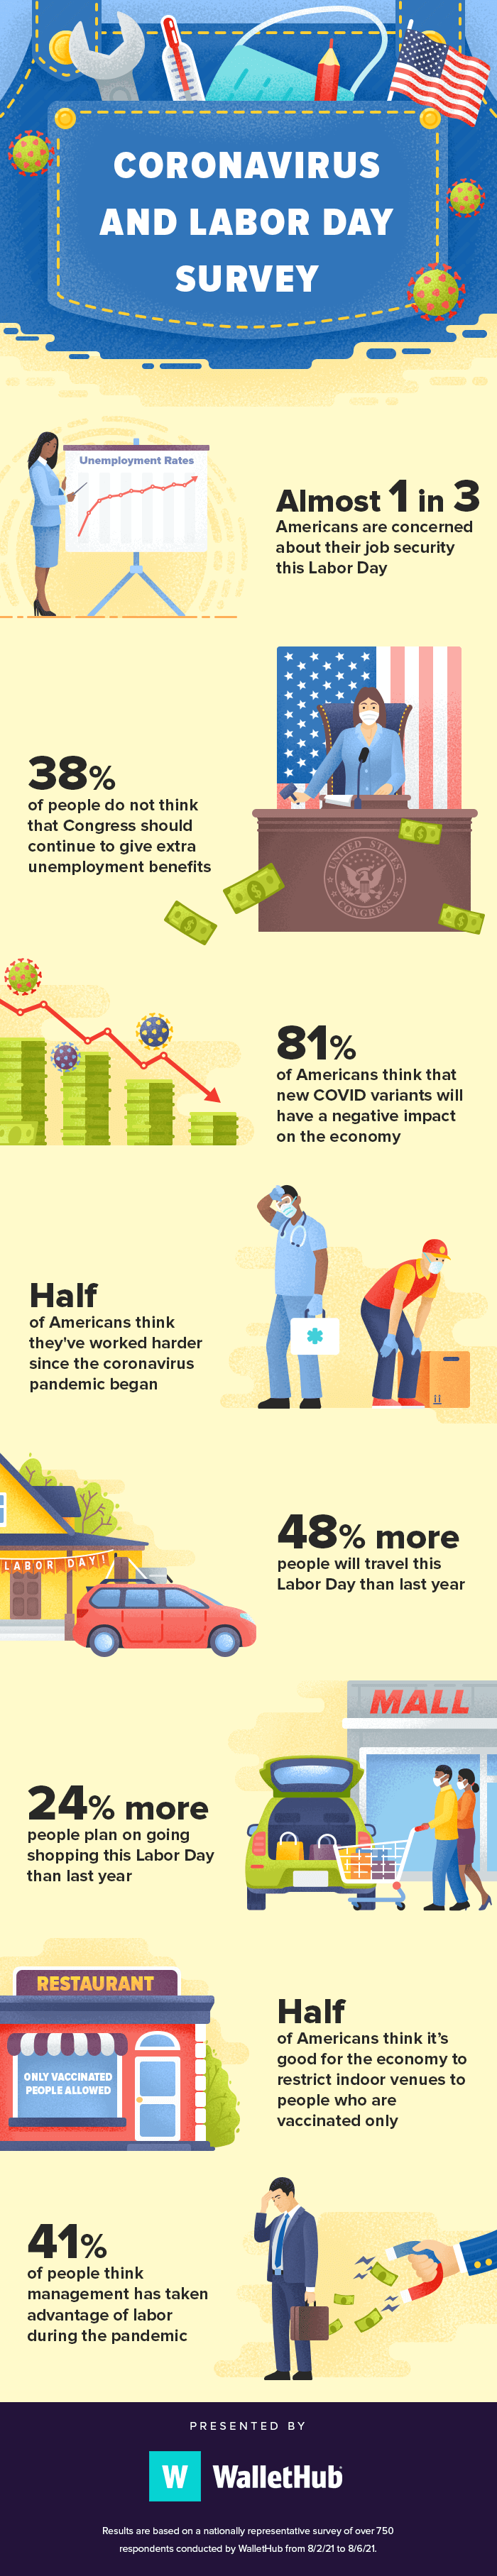 1 in 3 Americans Worry About Job Security & Labor Day By the Numbers